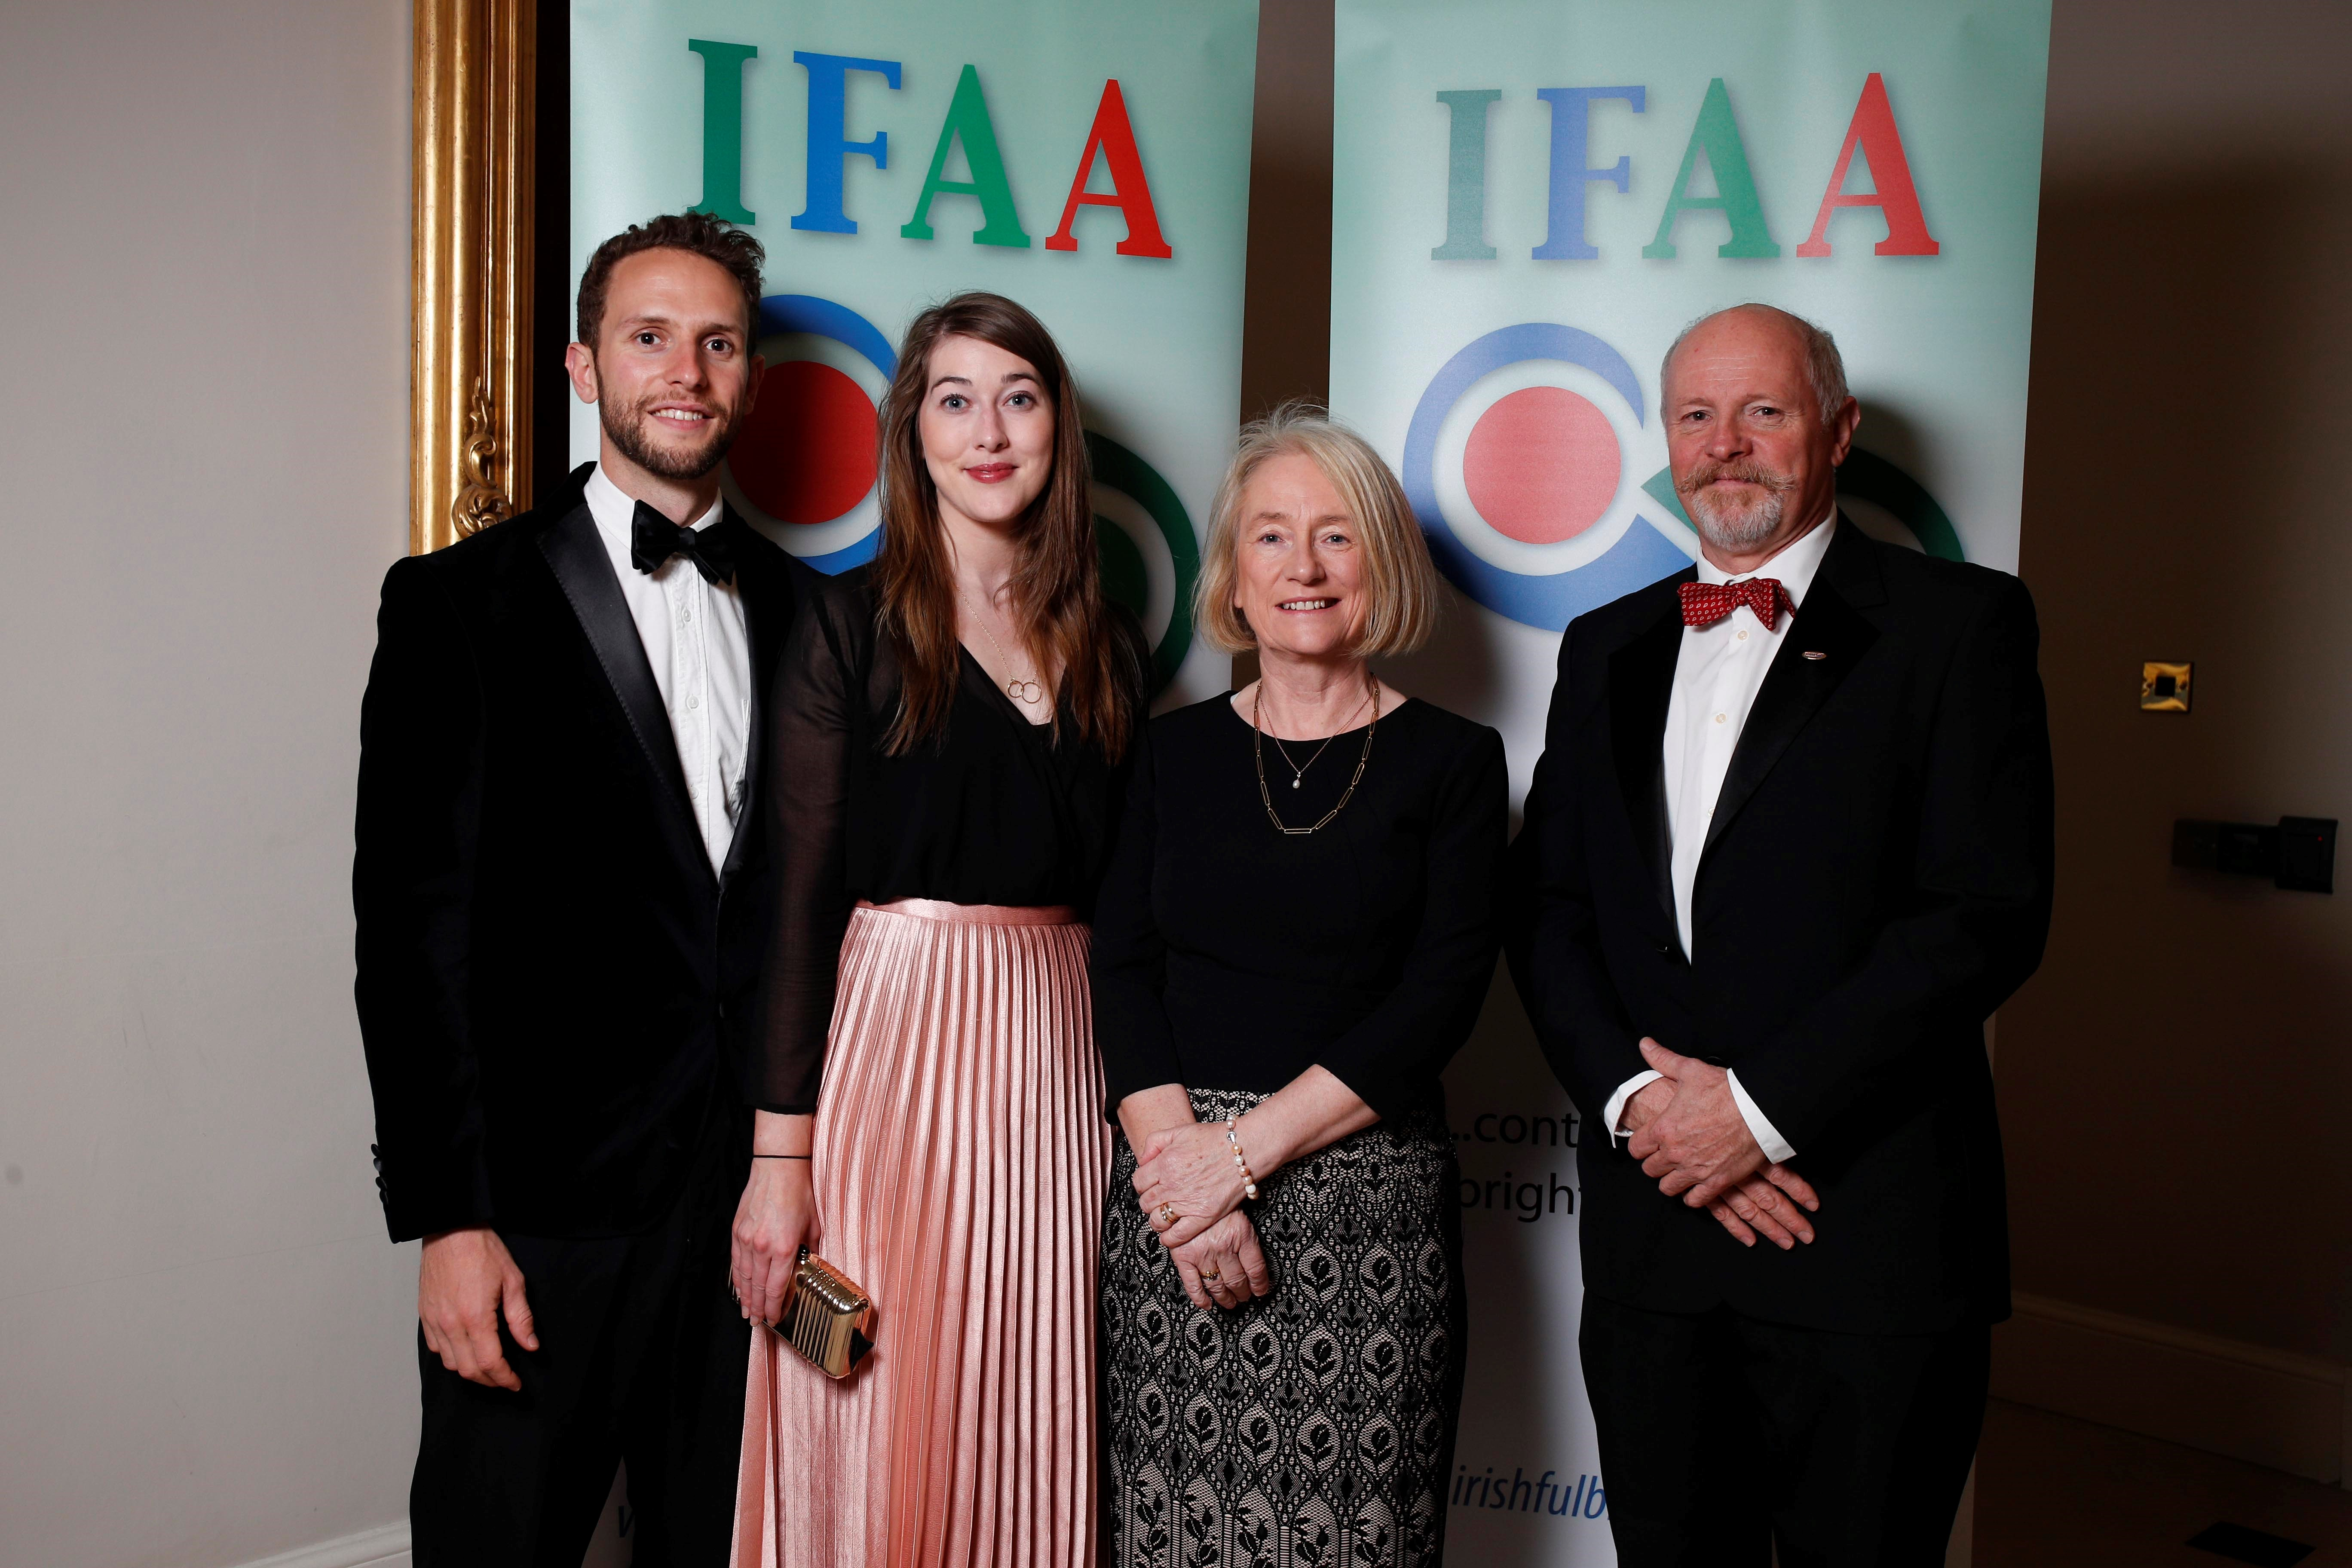 James O'Brien Moran, Rebecca Kilbane, Dr Marie Burke and Dr Jimmy O'Brien Moran at the IFAA Scholars' Dinner in Dublin Castle. Former president of the IFAA, Jimmy received the Fulbright Medal of Honour for his work with the association.